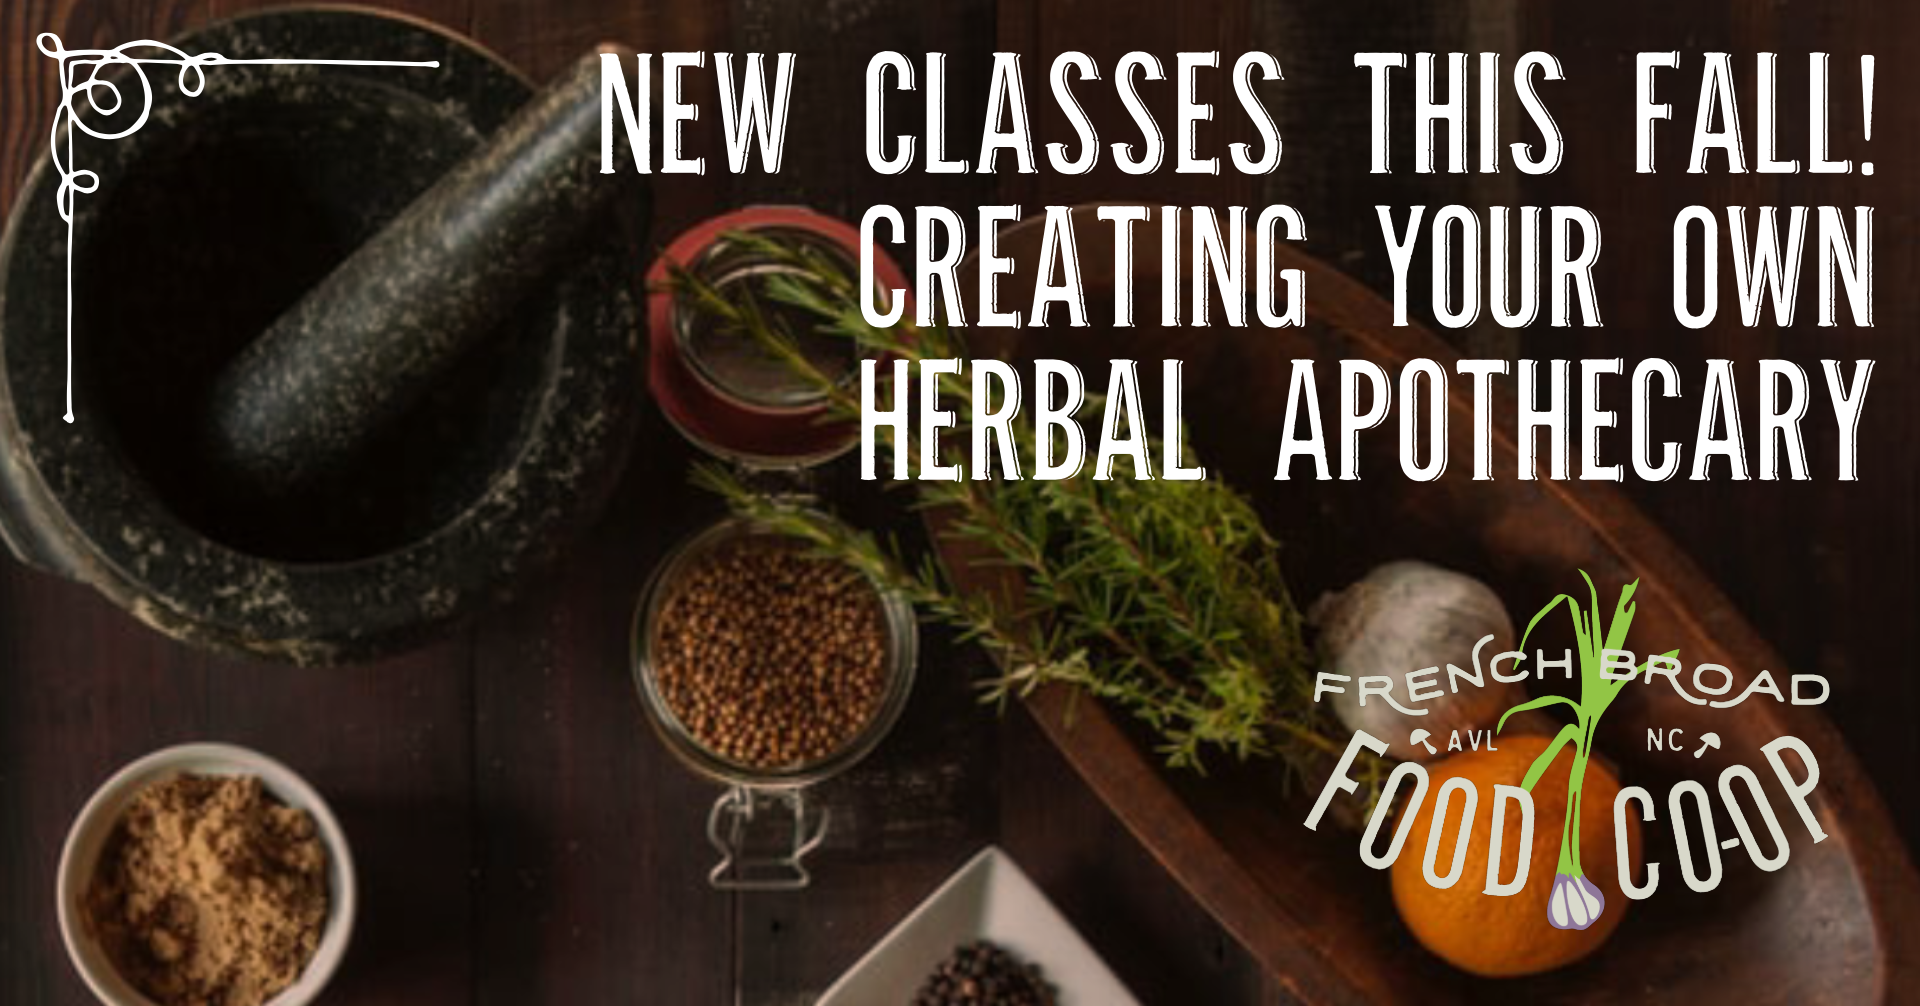 Coming this fall! Creating Your Own Herbal Apothecary